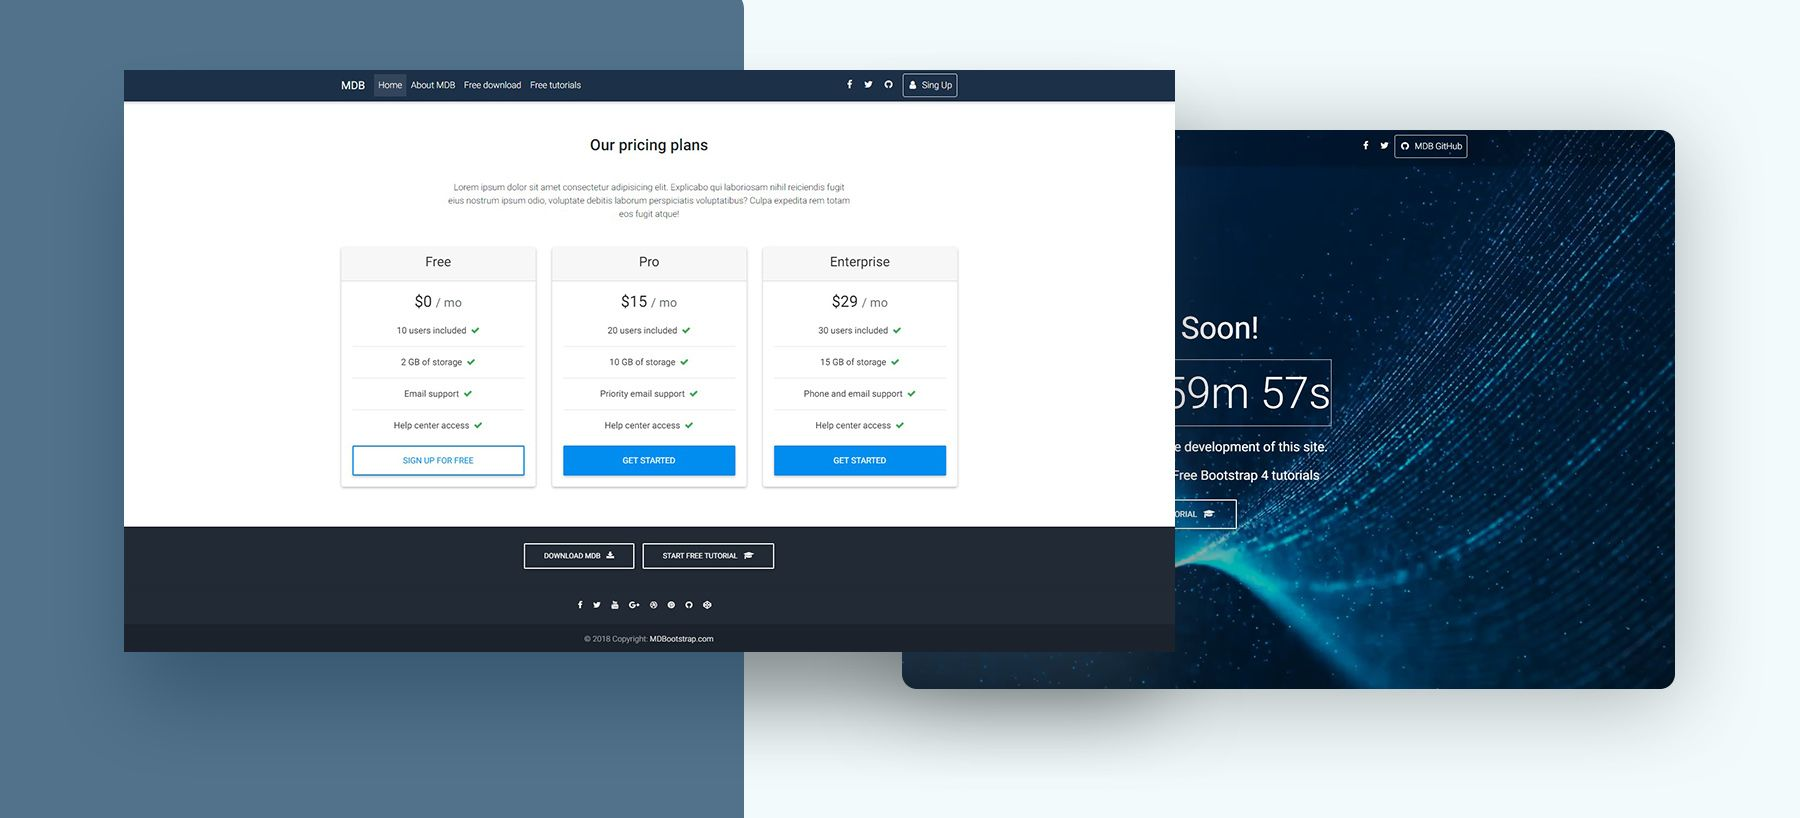 Saas free responsive saas website template colorlib.